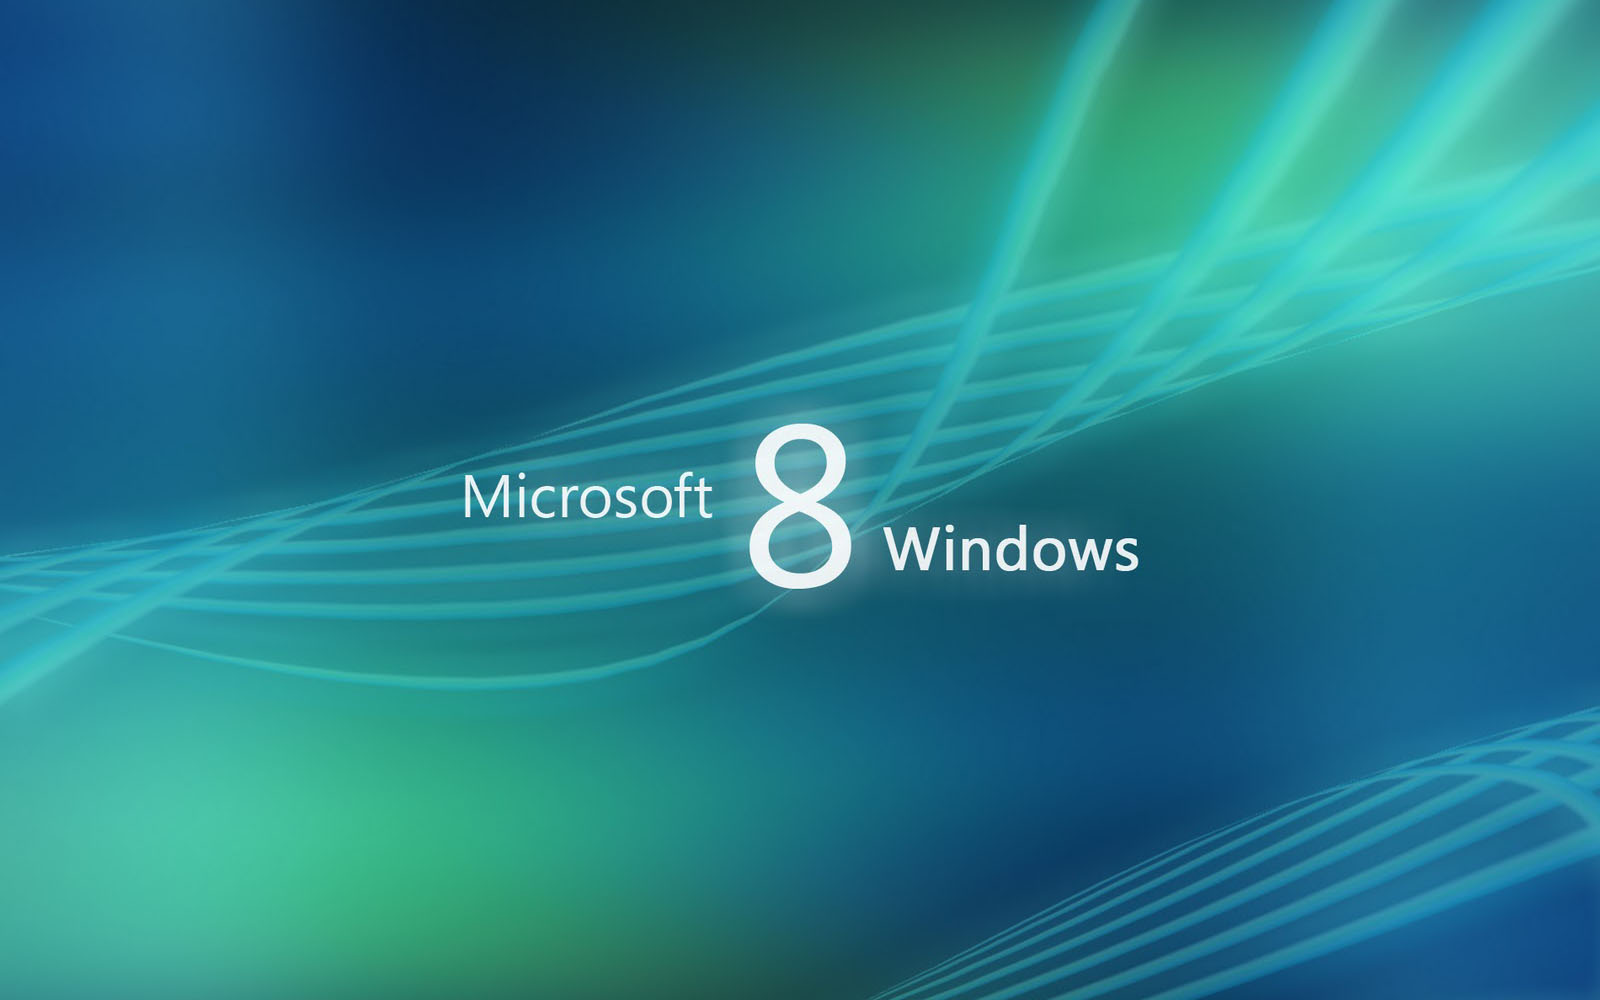 Hd wallpapers windows 8 background themes - Windows wallpaper themes free ...